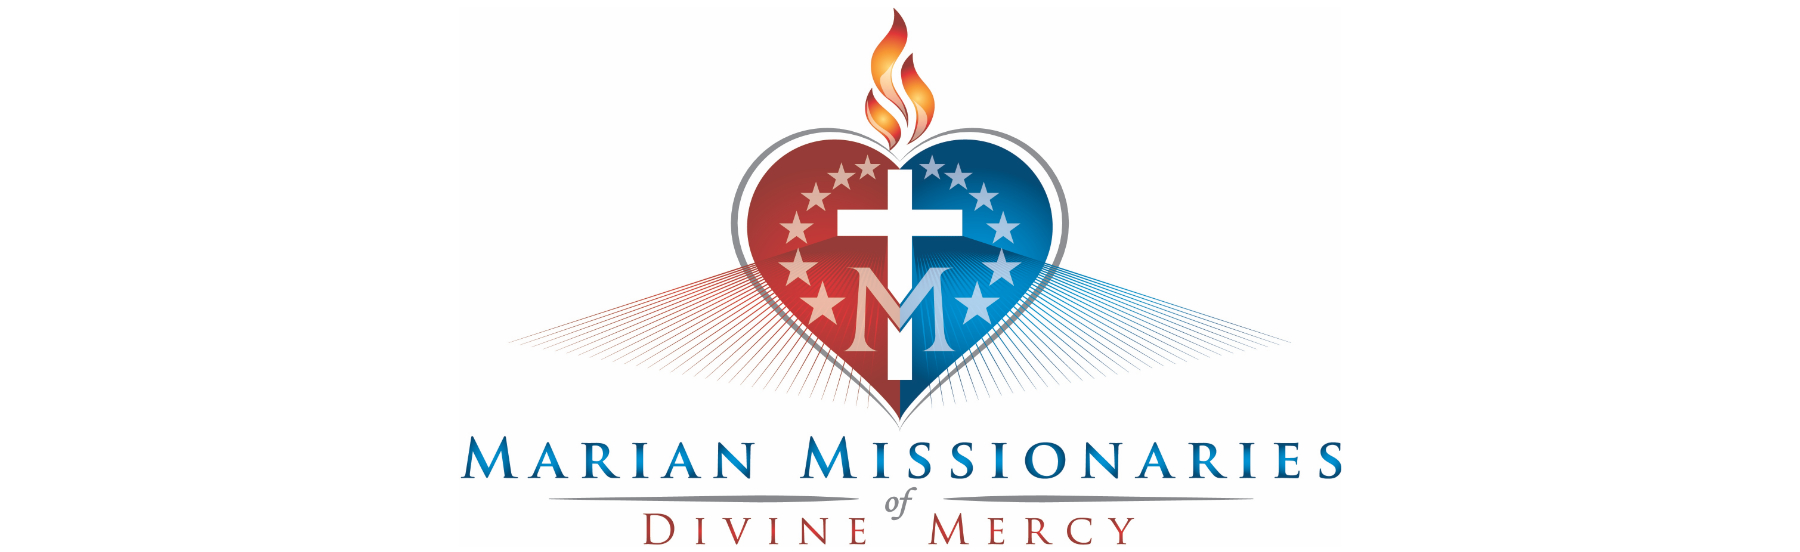 Marian Missionaries of Divine Mercy